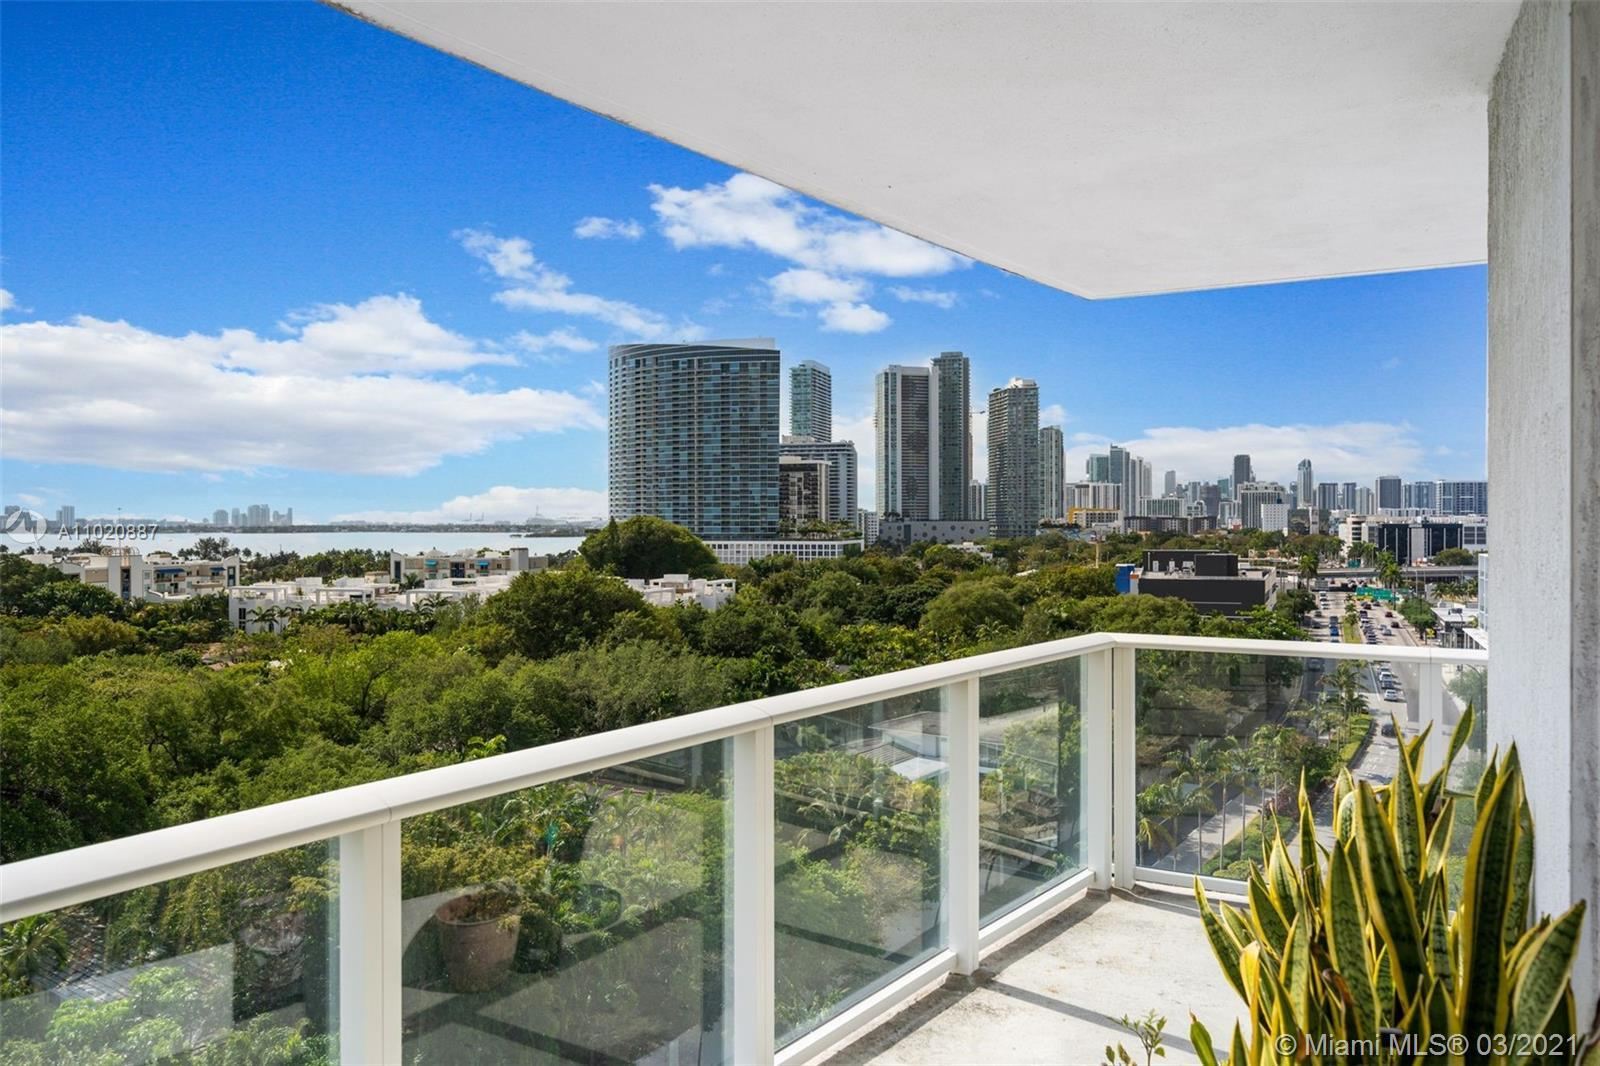 Stunning Corner Unit w Bay Views at Baltus House. 2015 Construction, Brand New, Iconic Miami Luxury.